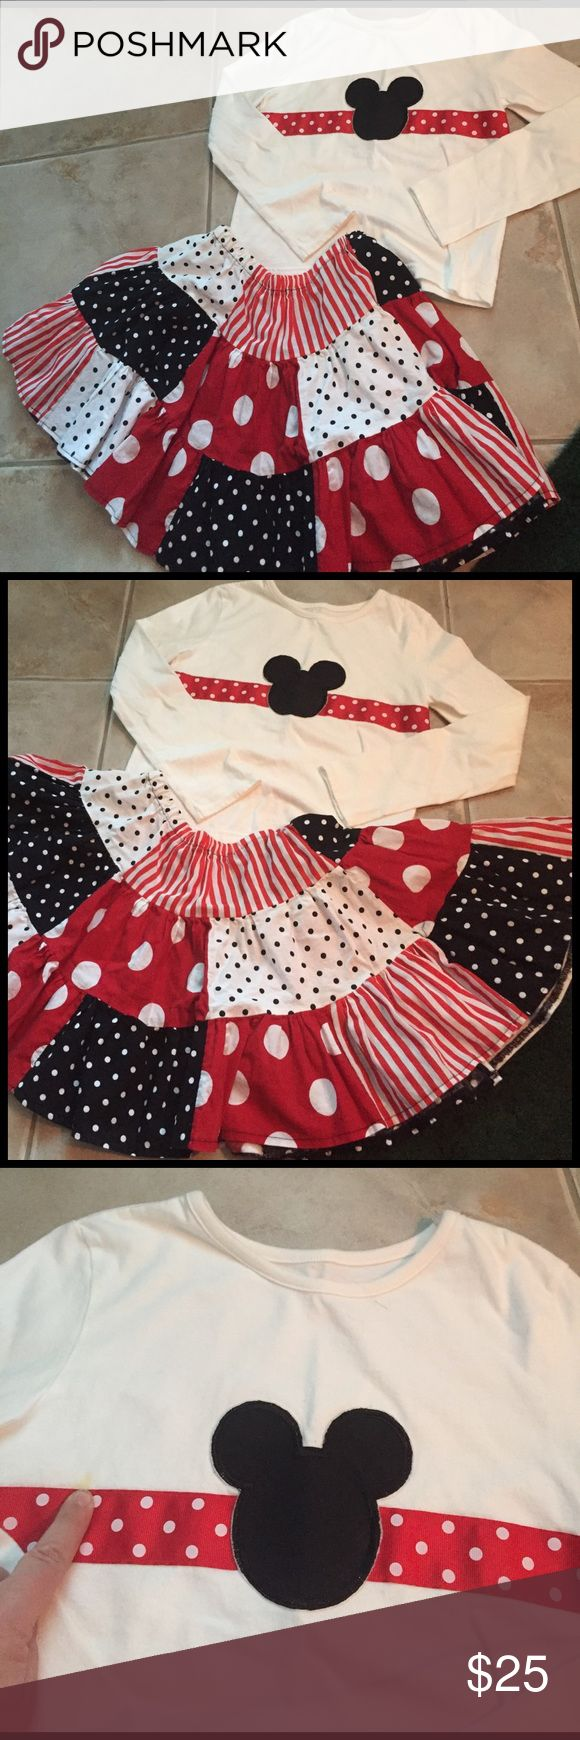 Handmade skirt and top Disney inspired girls outfit size medium (7/8).  Small stain in last photo. Other